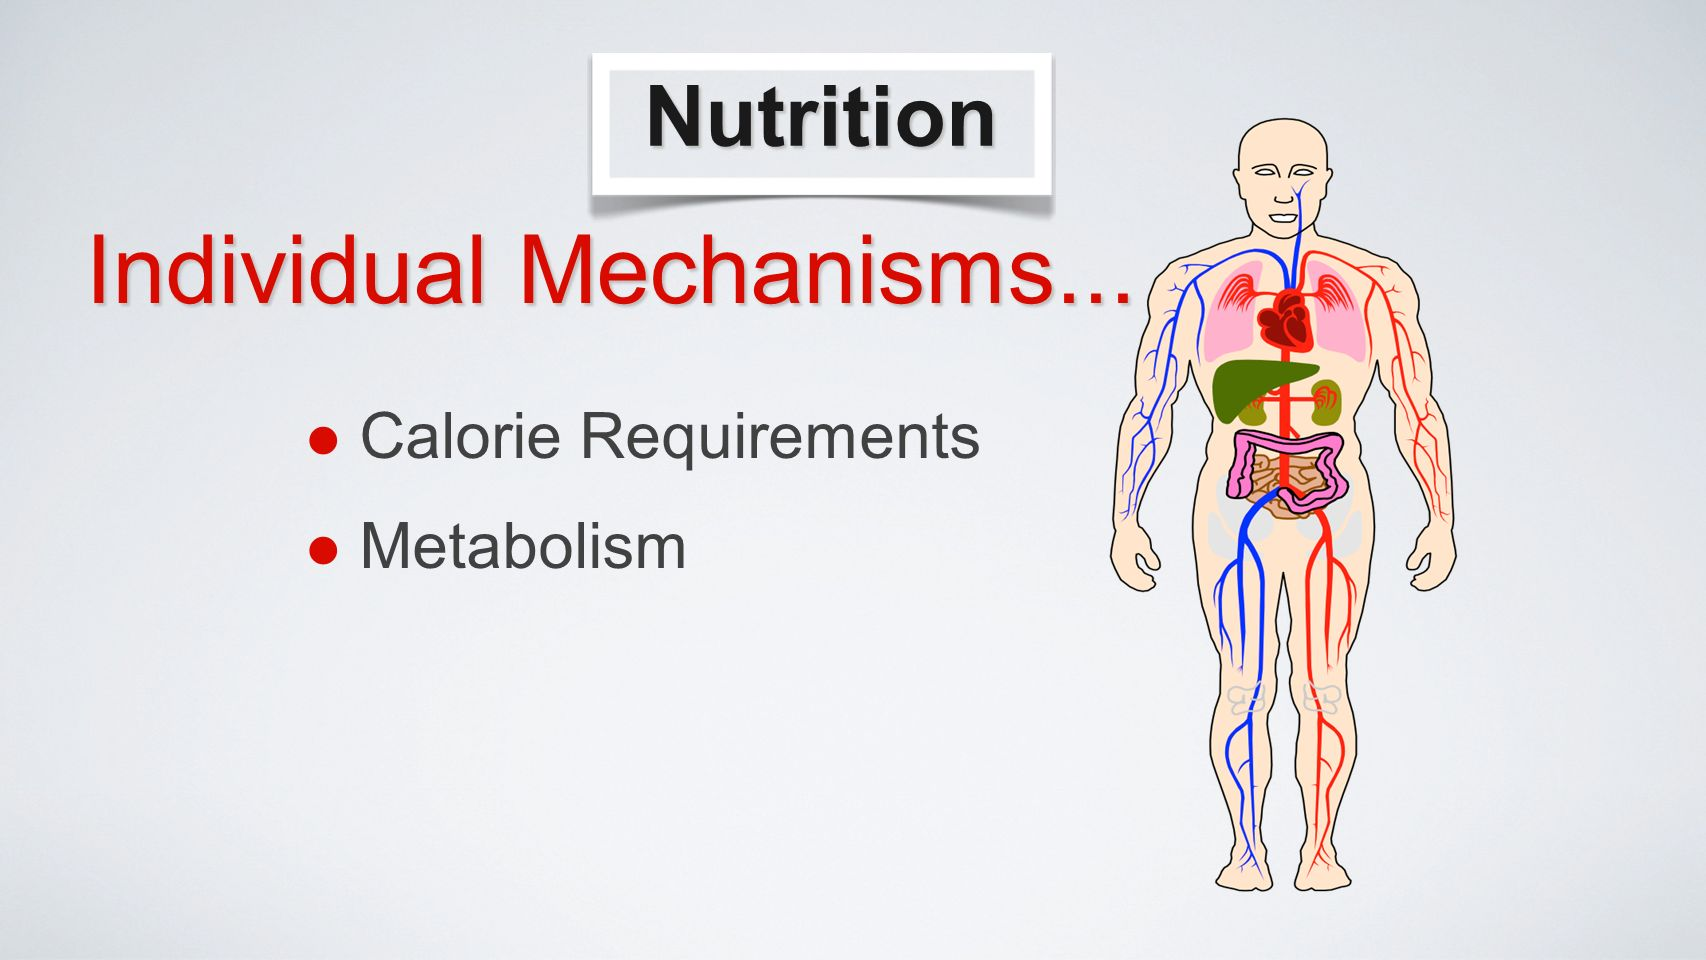 Nutrition Calorie Requirements Metabolism Individual Mechanisms...